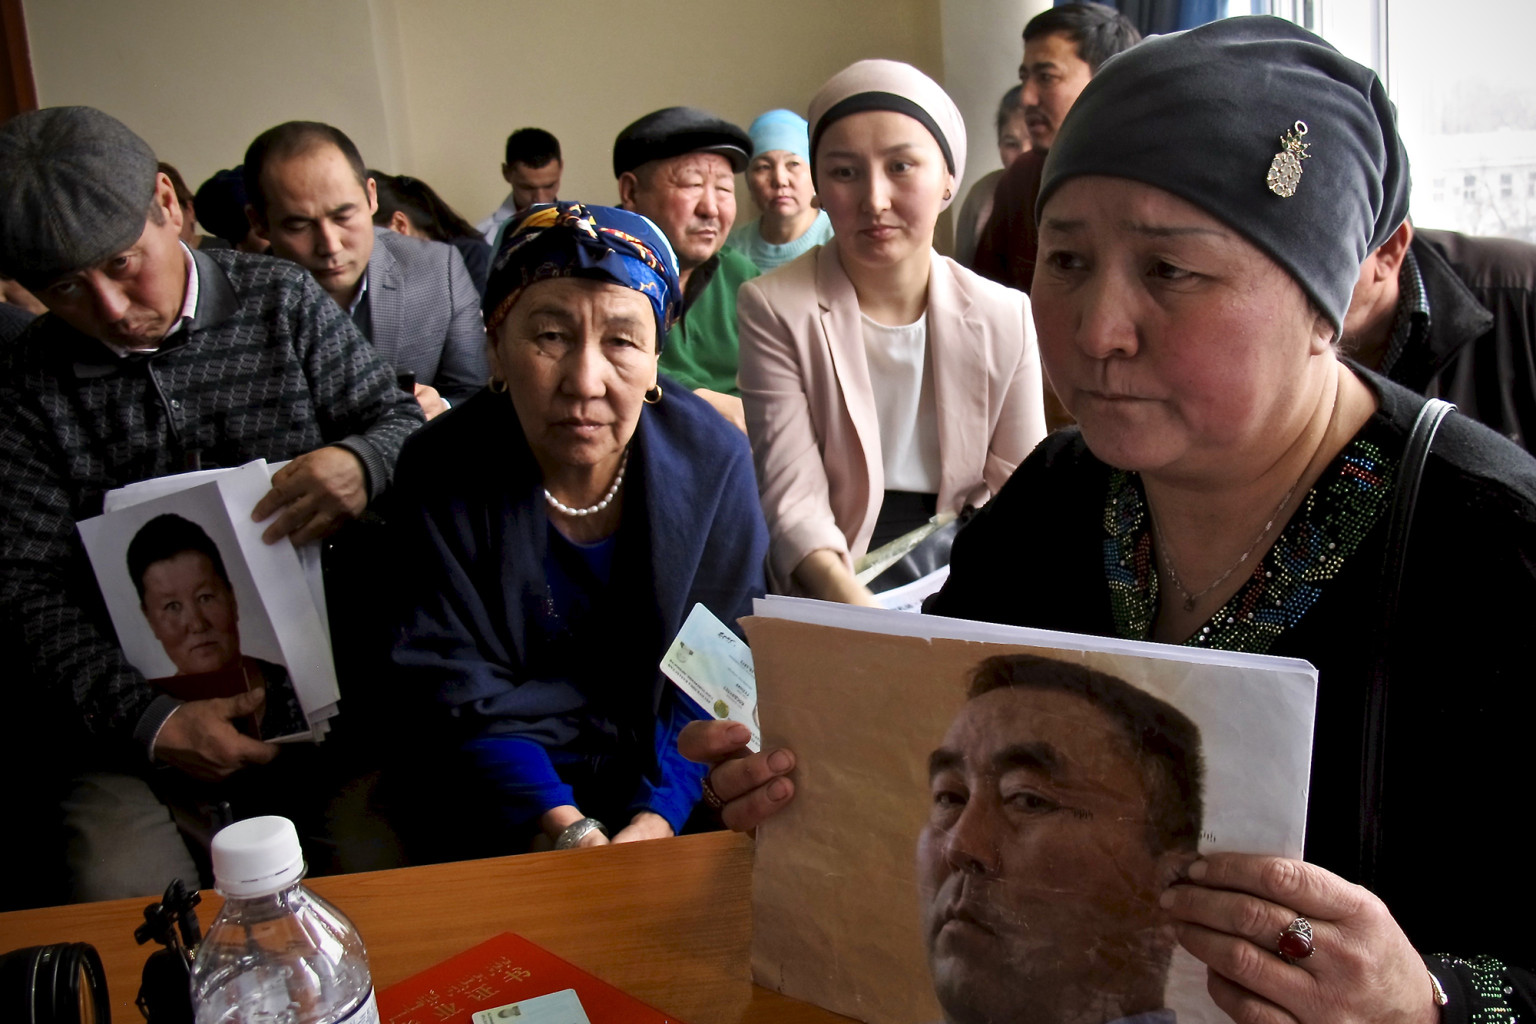 Kazakhs Won't Be Silenced on China's Internment Camps